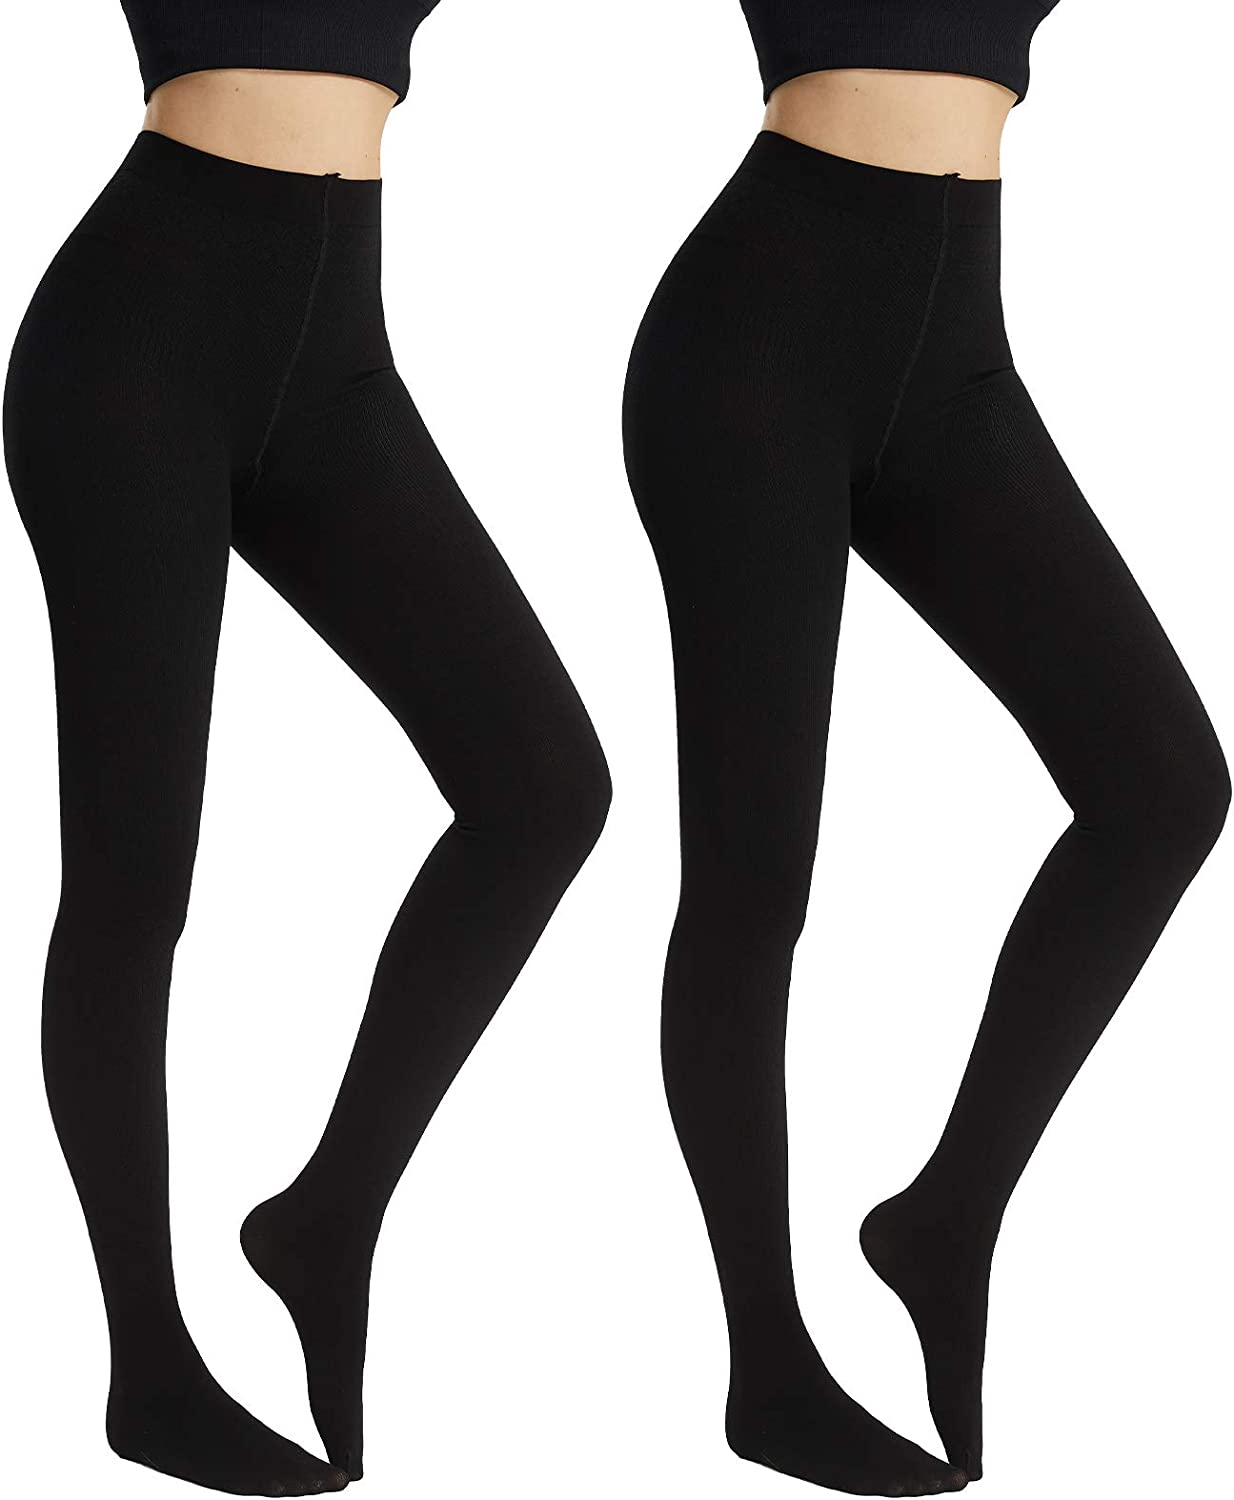 MANZI Modal Pantyhose Thick Winter Thermal Tights for Women 2 Pairs